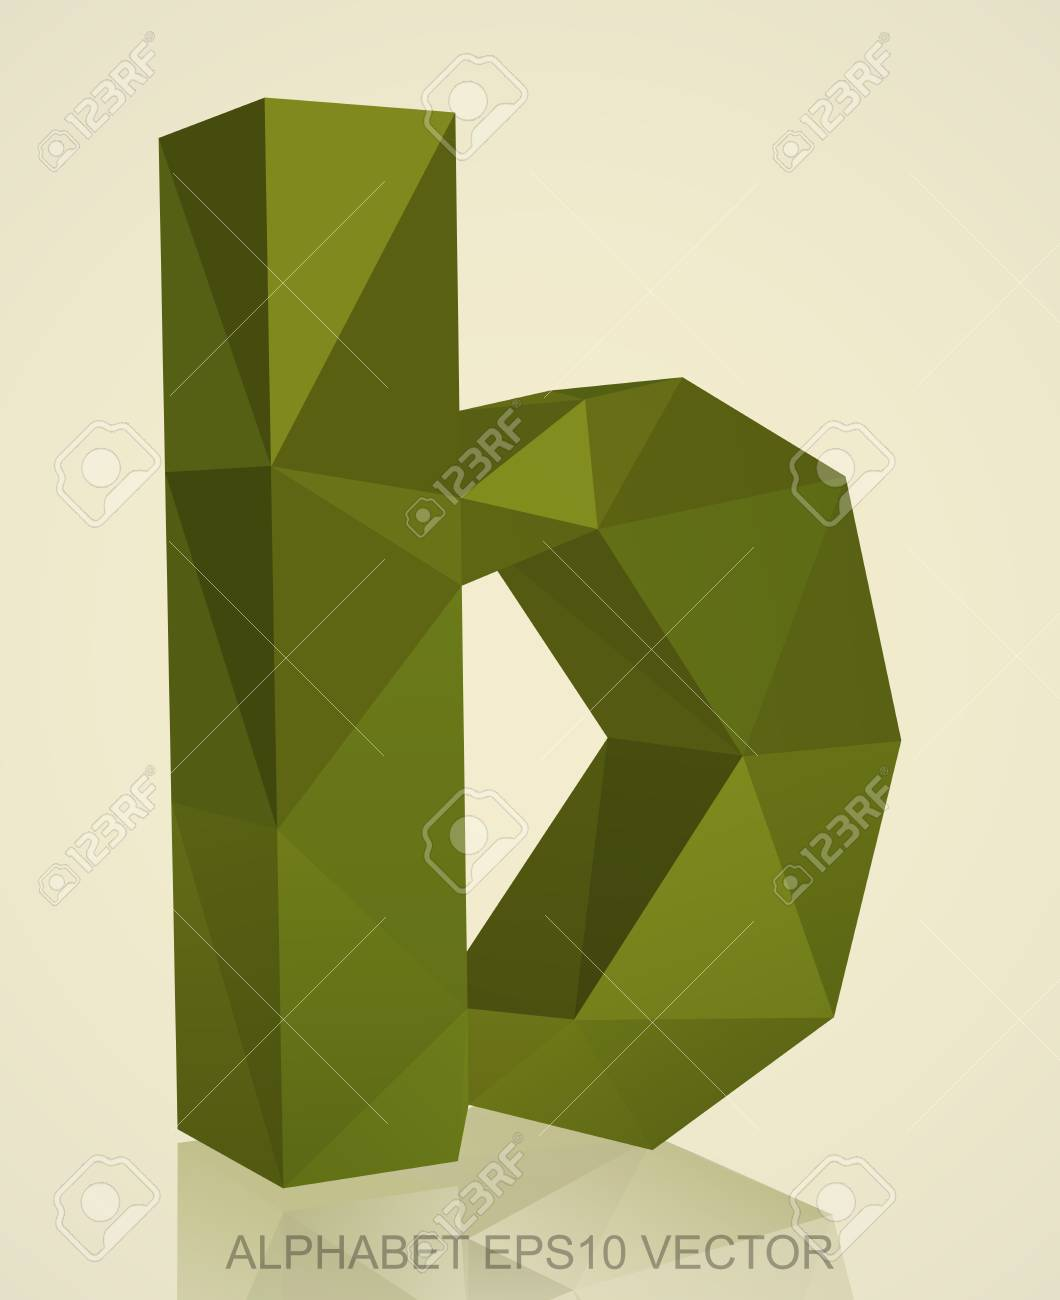 Abstract Khaki 3d Polygonal Lowercase Letter B With Reflection